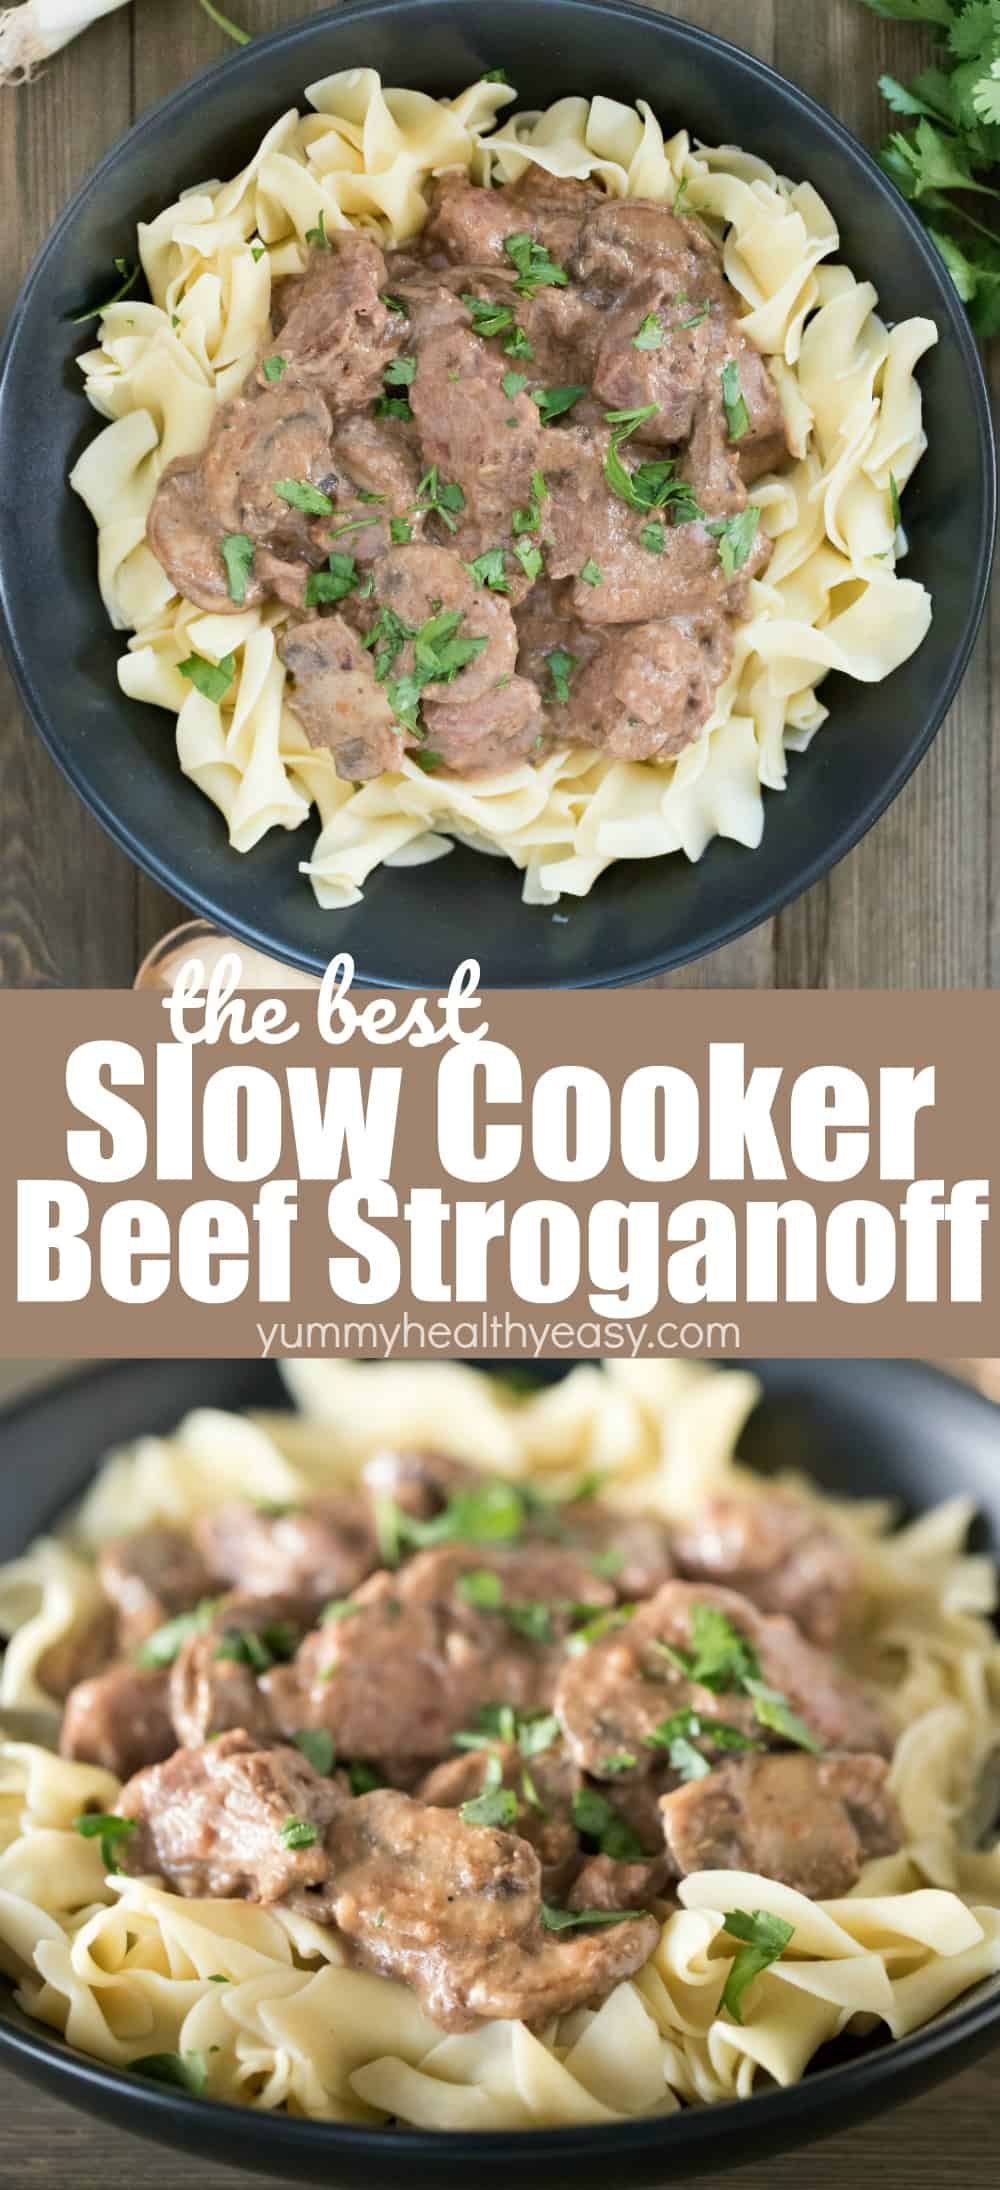 Slow Cooker Beef Stroganoff makes such a delicious and simple meal! Throw a few easy ingredients in the slow cooker and let it do its thing. By dinnertime, you have a delicious home cooked beef stroganoff dinner everyone will love! Added bonus? That your house smells amazing all day long! via @jennikolaus